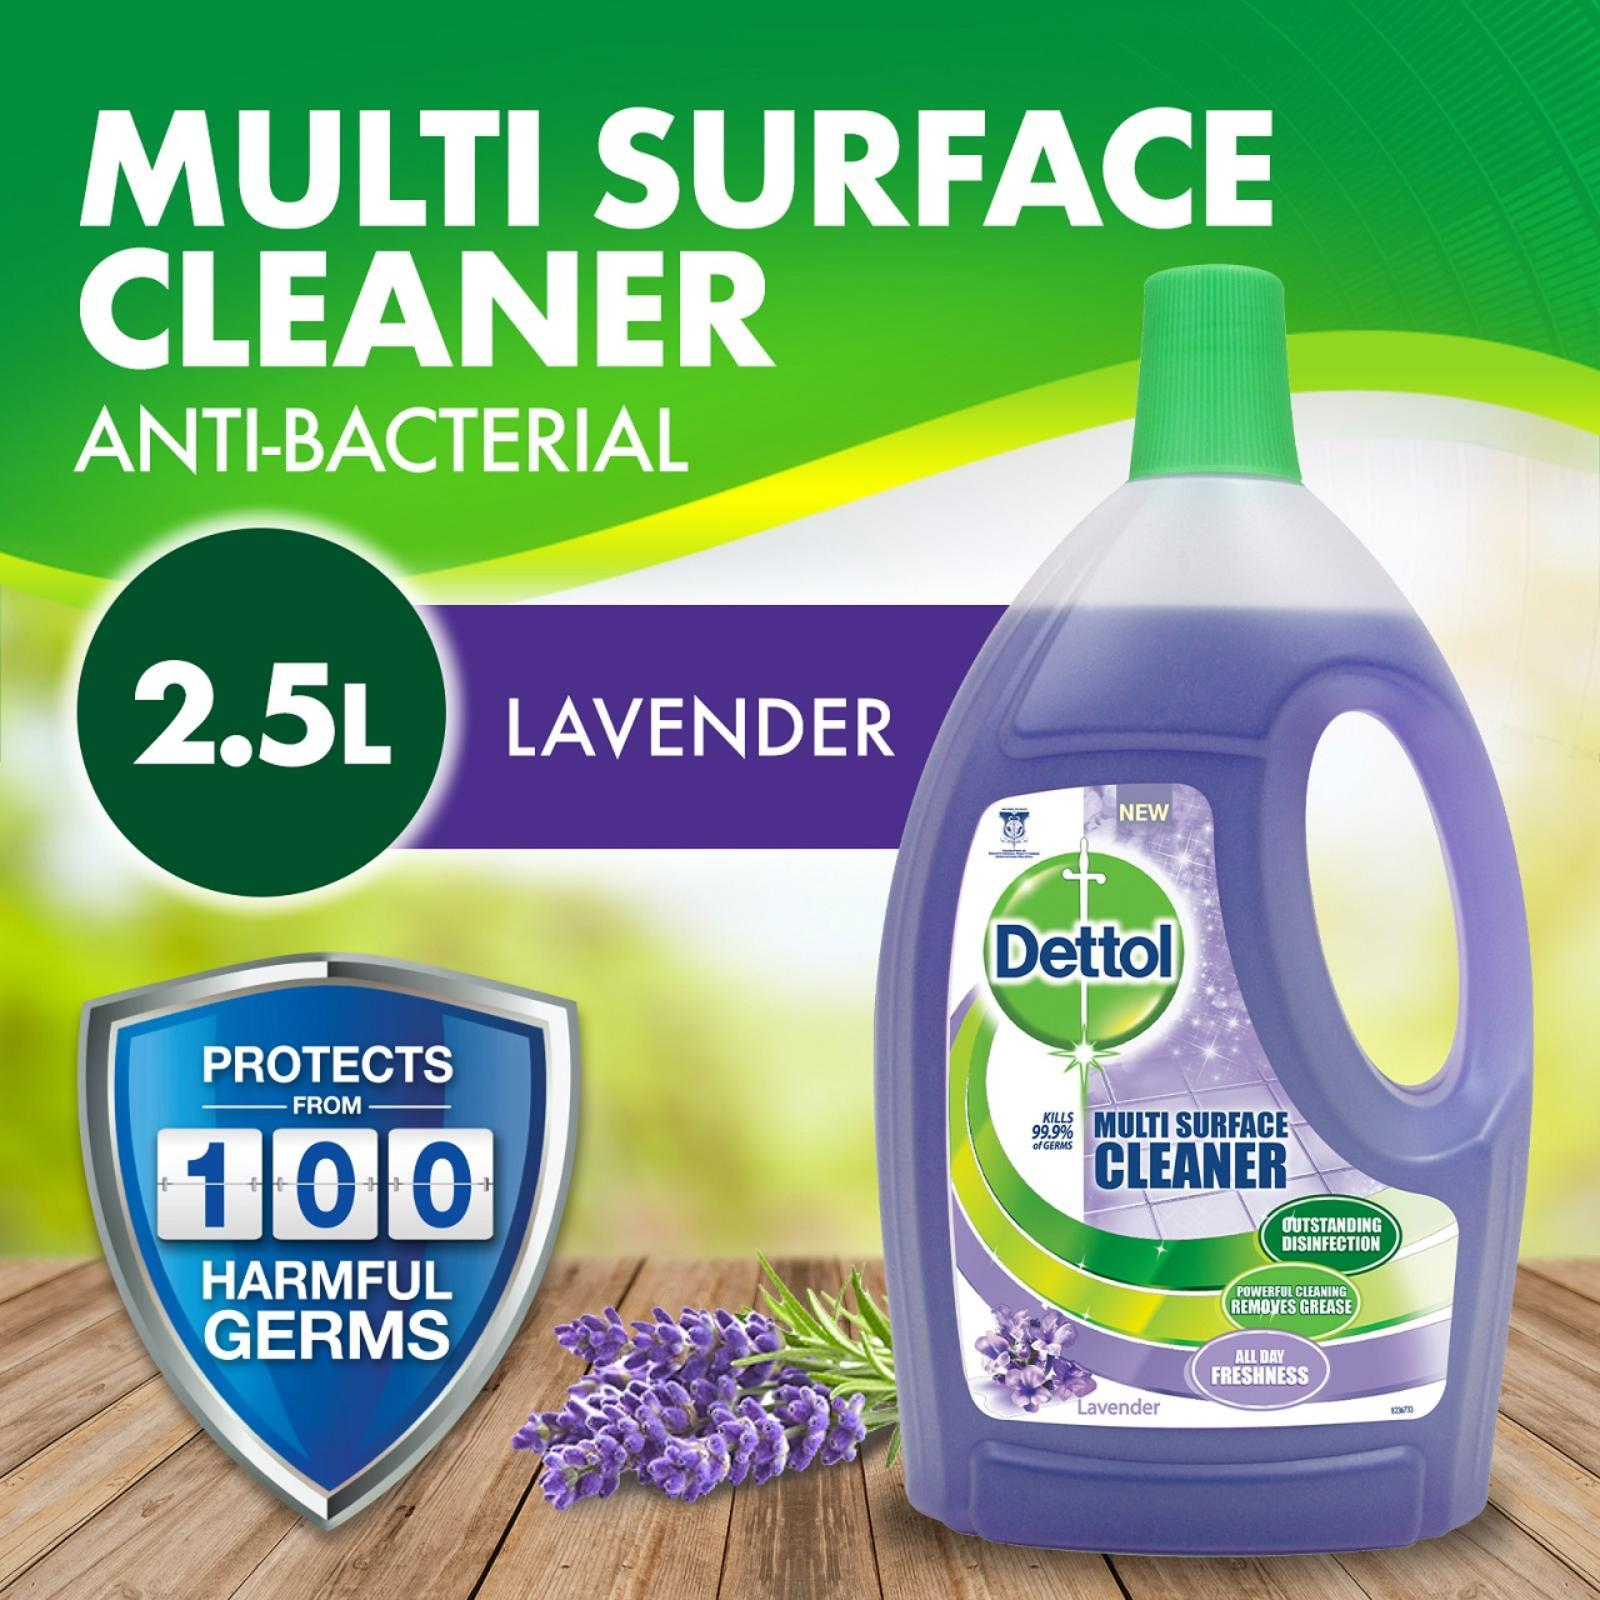 Dettol 4-in-1 Disinfectant Multi Surface Cleaner Lavender 2.5L